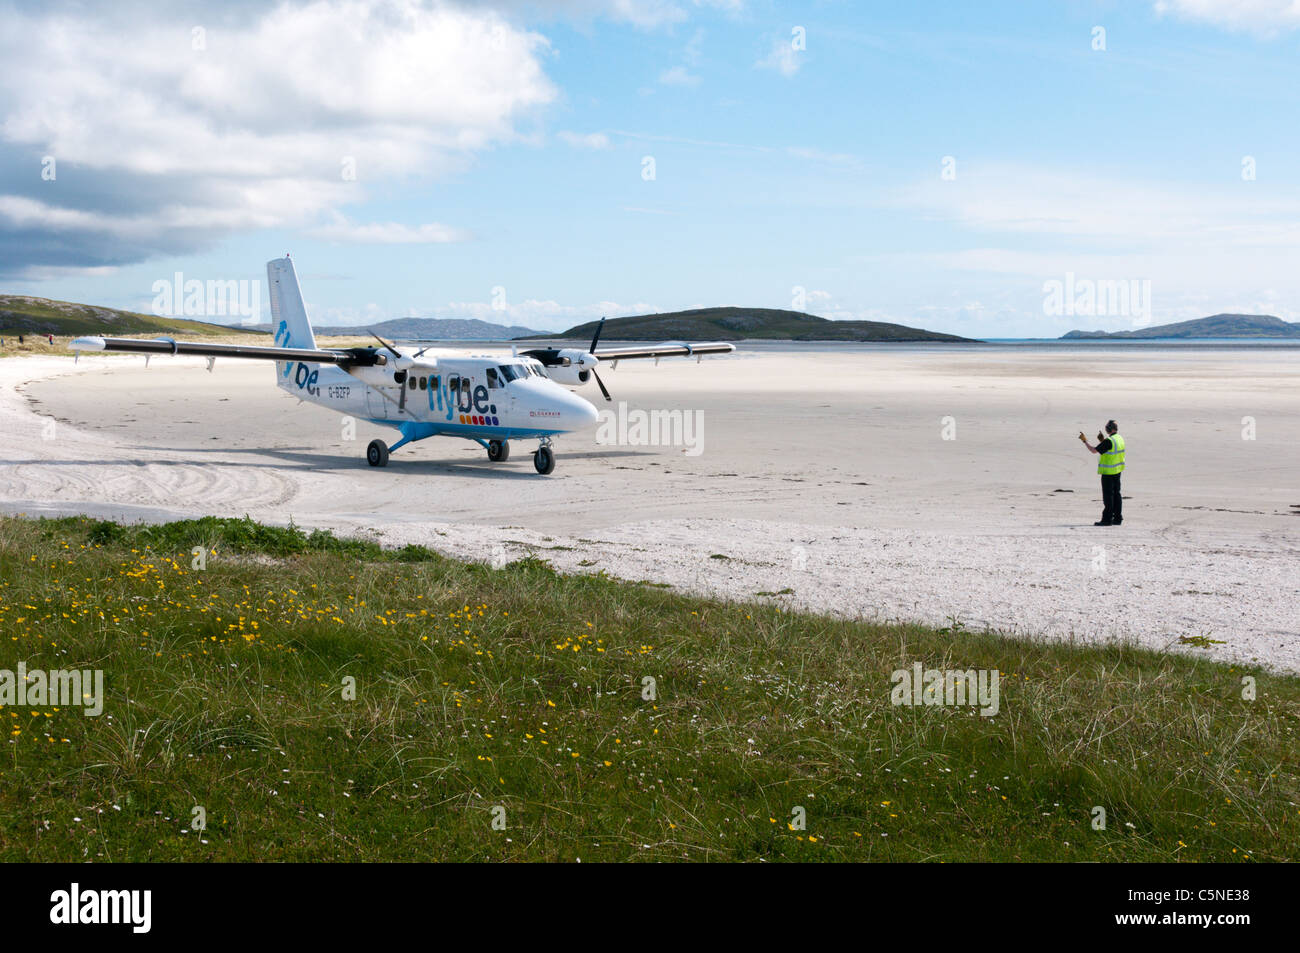 A de Havilland DHC-6 Twin Otter plane of Flybe - Loganair on the beach airstrip on the island of Barra in the Outer Stock Photo